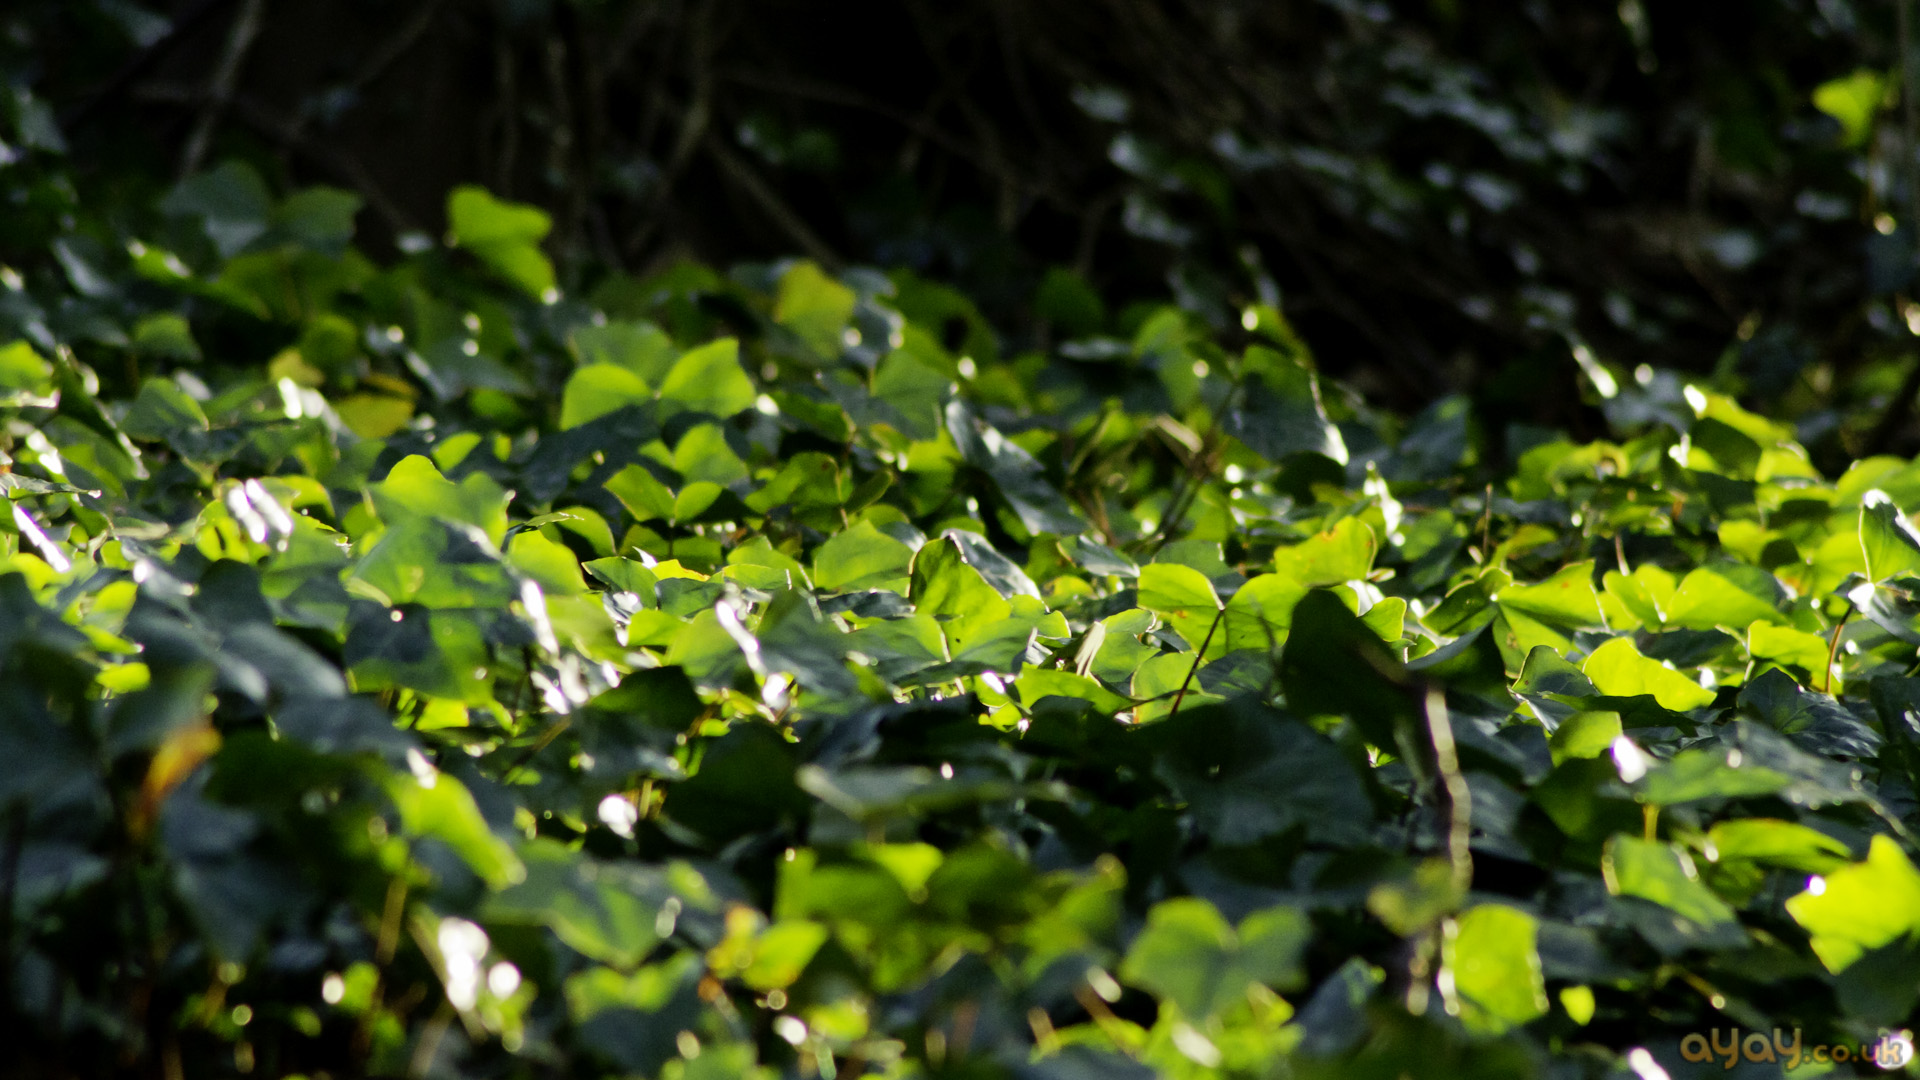 photography images sunlight on green foliage hd wallpaper and